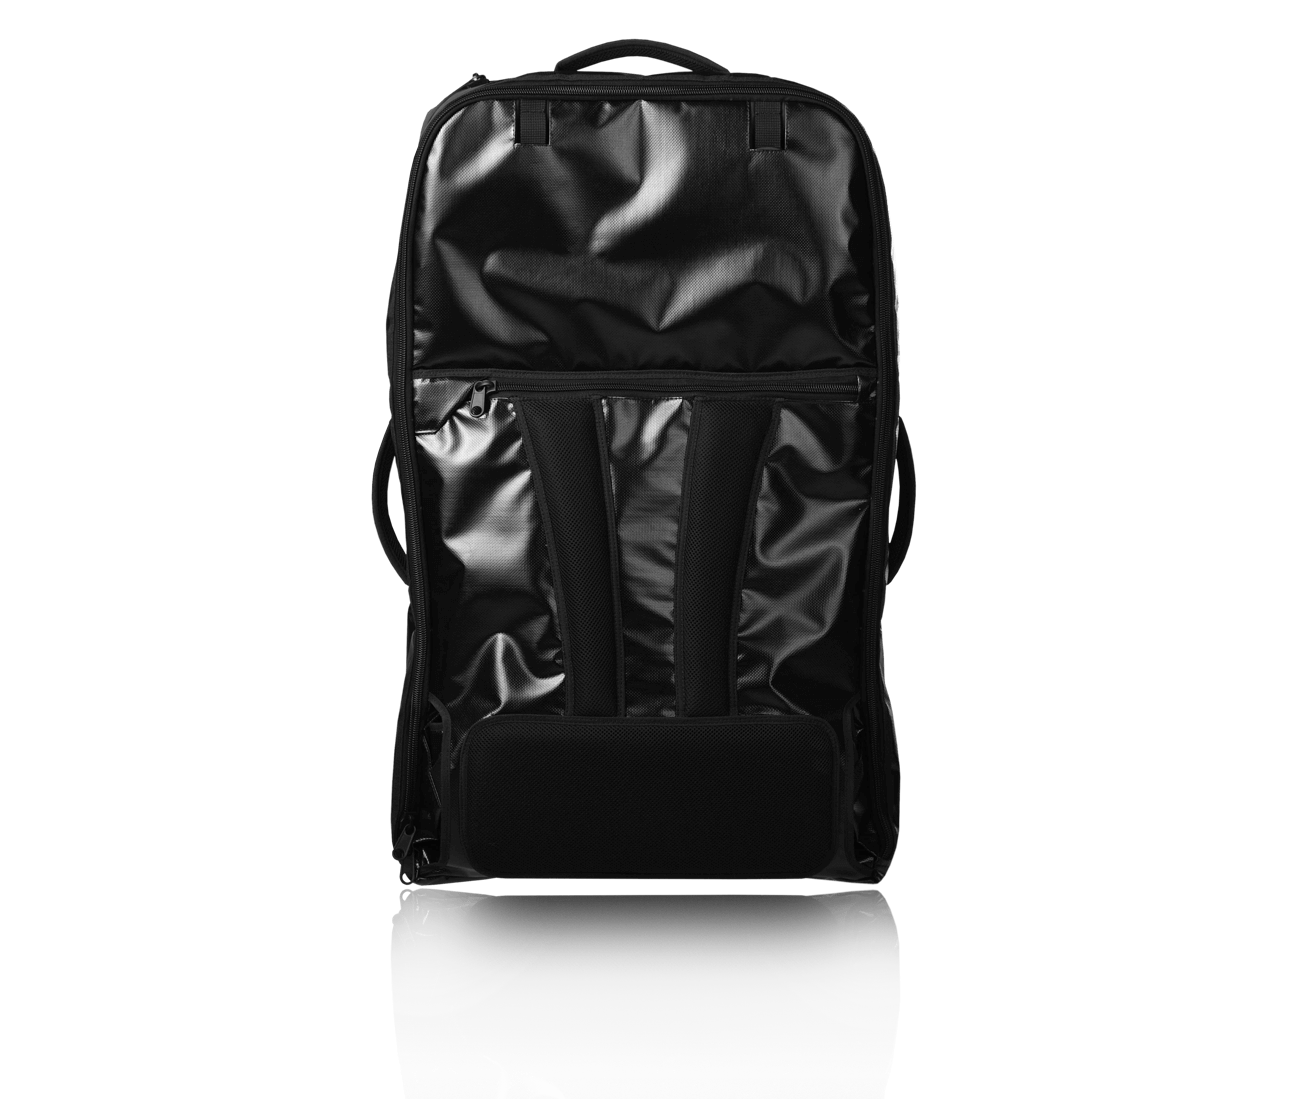 kitelement - travel bag - re pack backpack or luggage